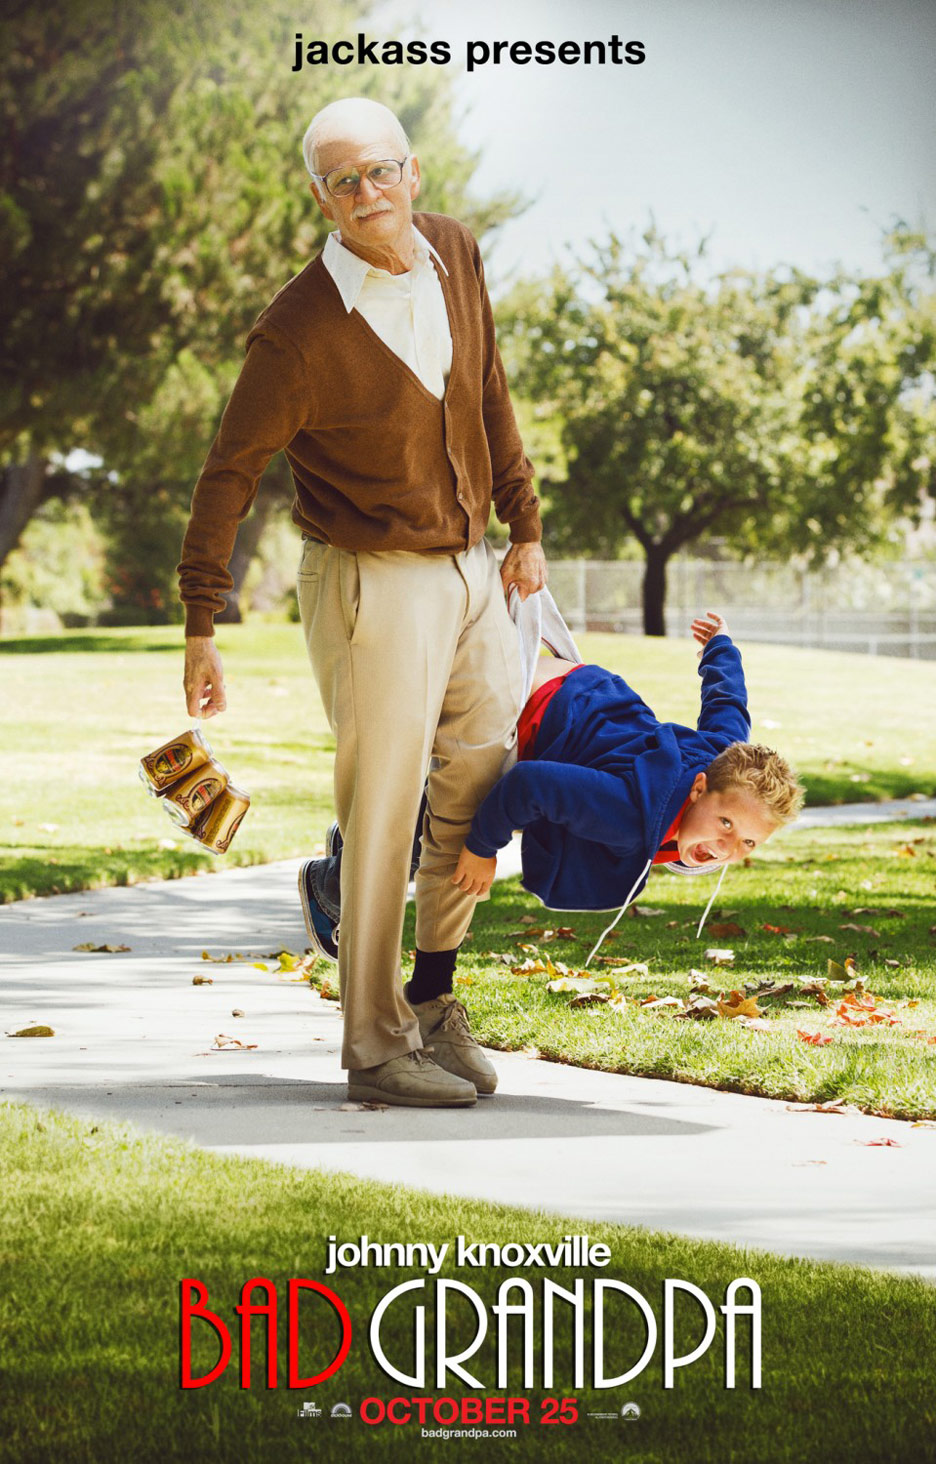 Jackass Presents: Bad Grandpa Poster #3